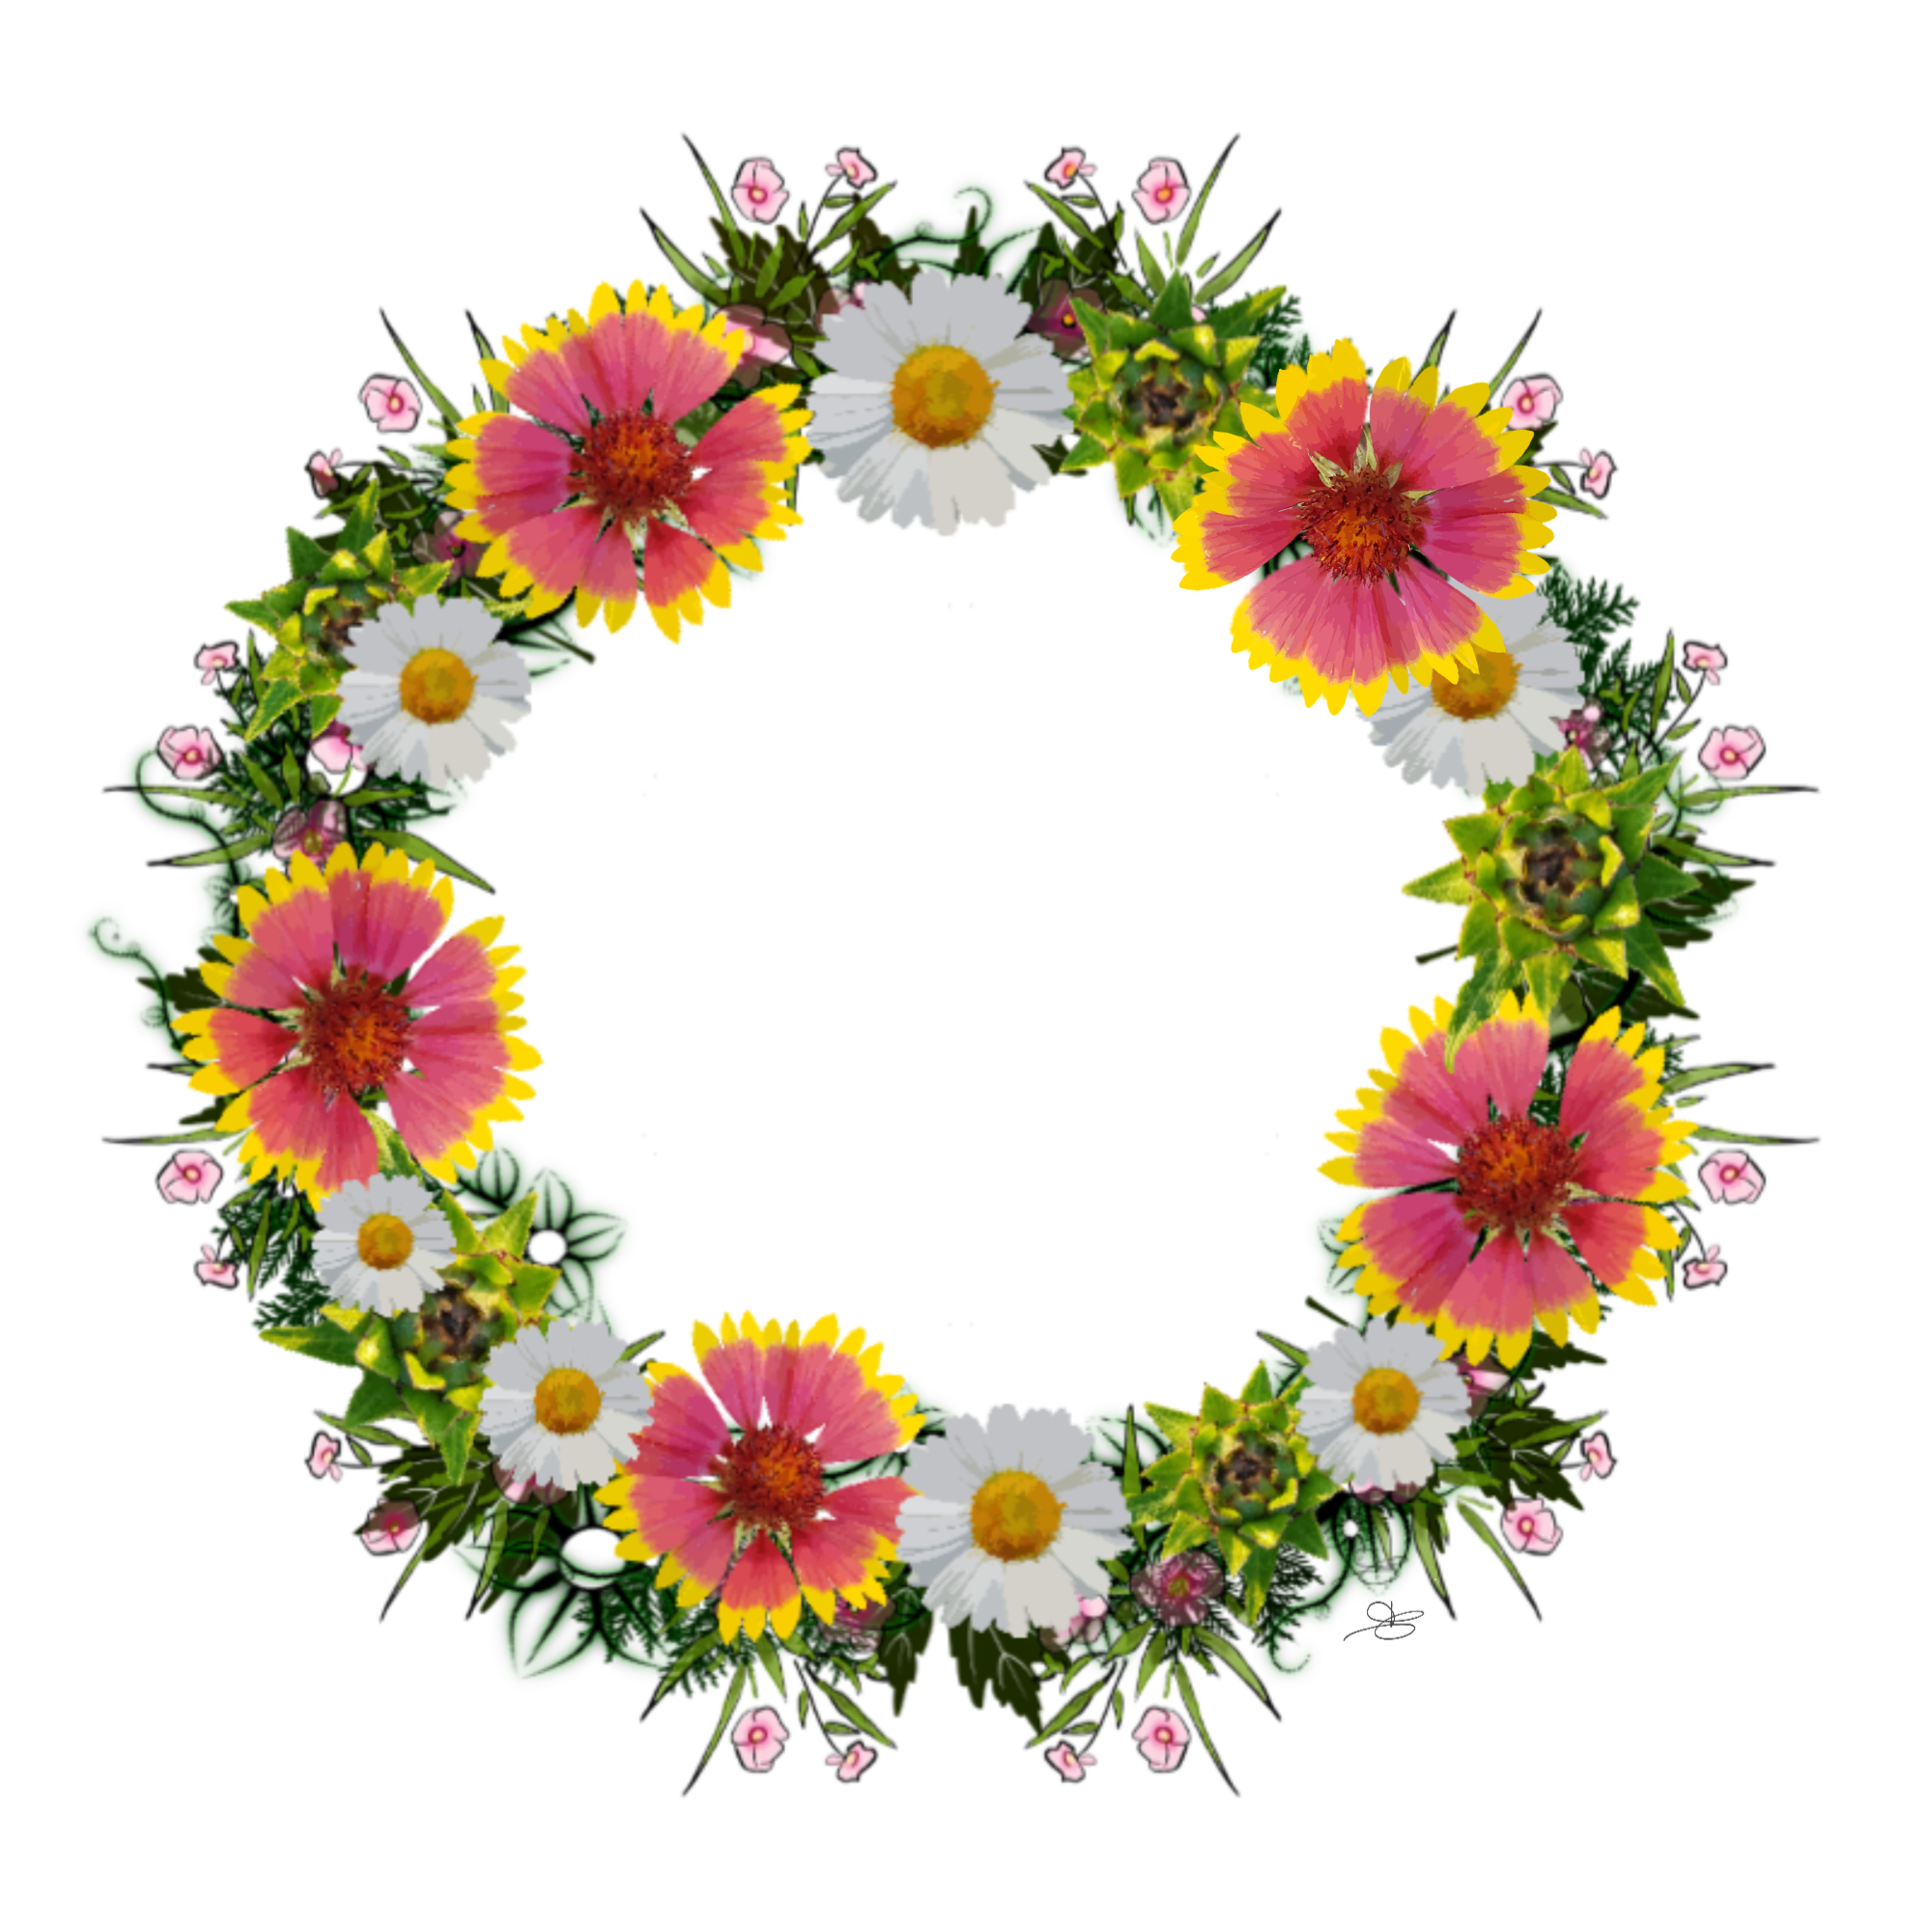 Daisy rose collection wreaths. Clipart winter wreath